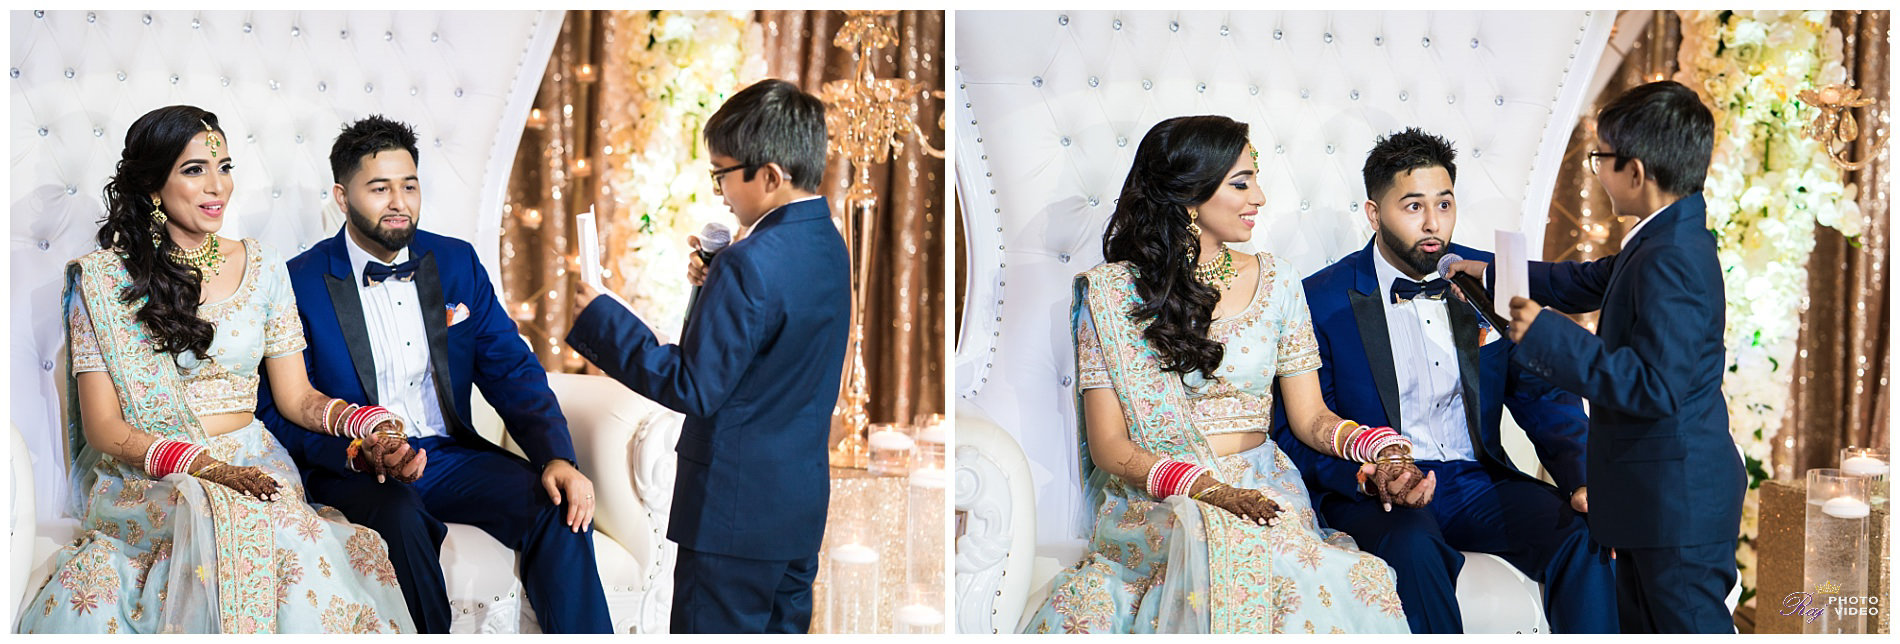 Marigold Somerset Nj Hindu Wedding Nidhi Rudra